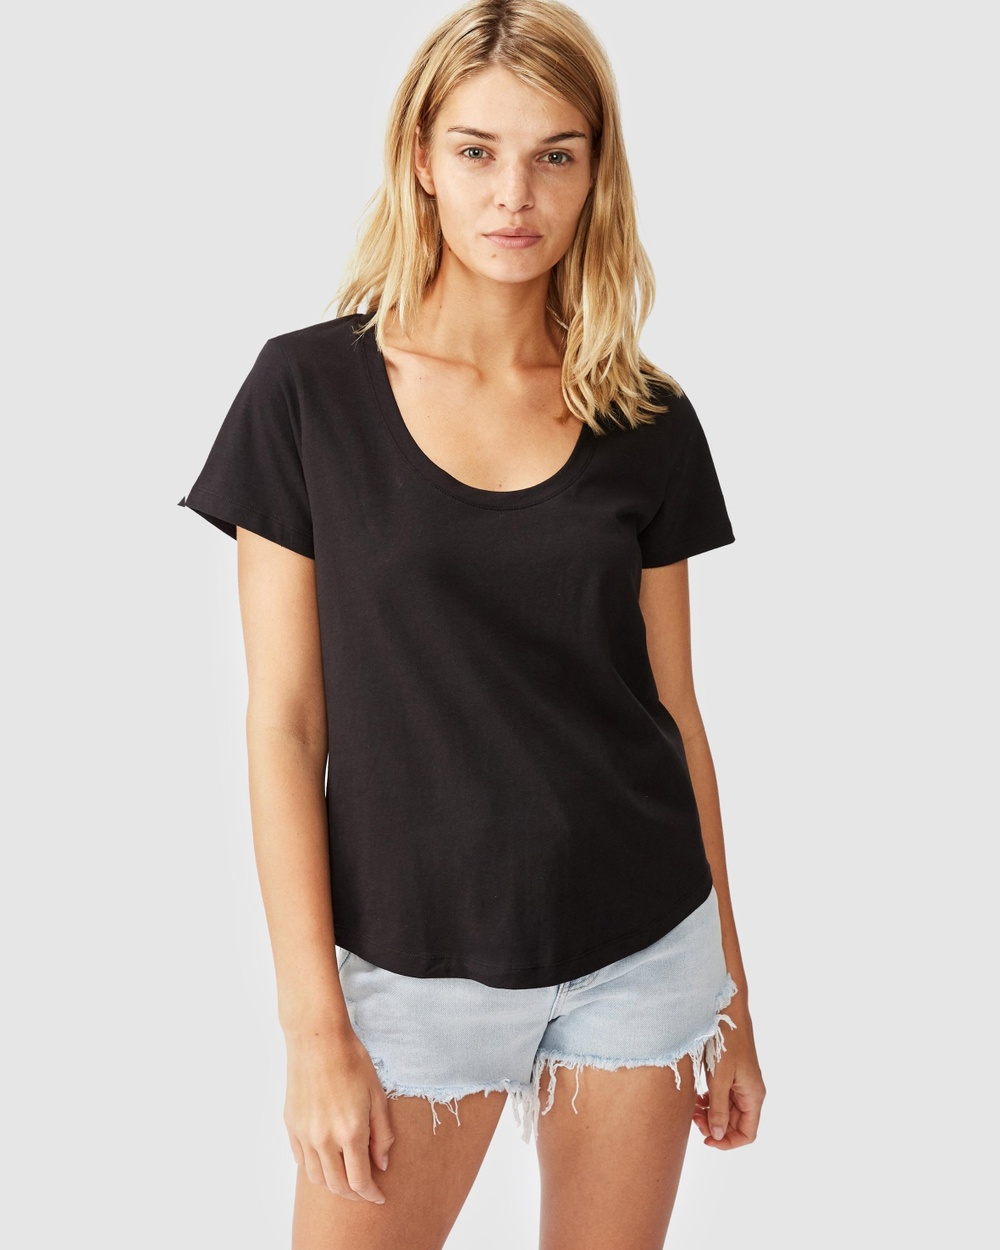 Cotton On - The One Scoop Tee - T-Shirts & Singlets (Black) The One Scoop Tee